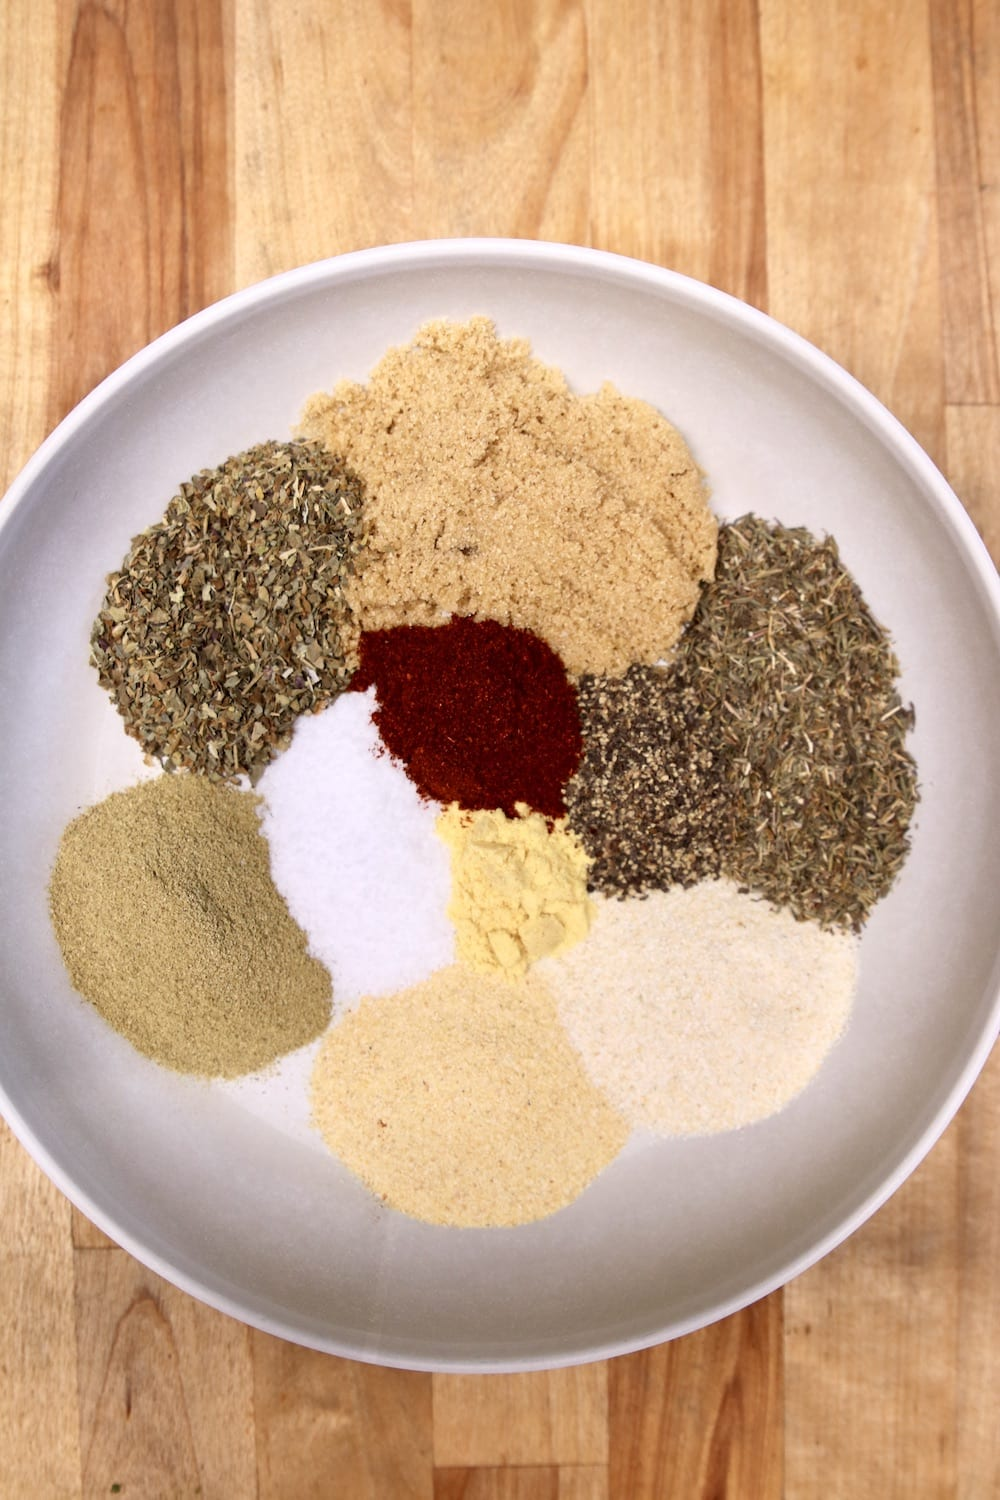 bowl of spices for garlic and herb rub - not combined